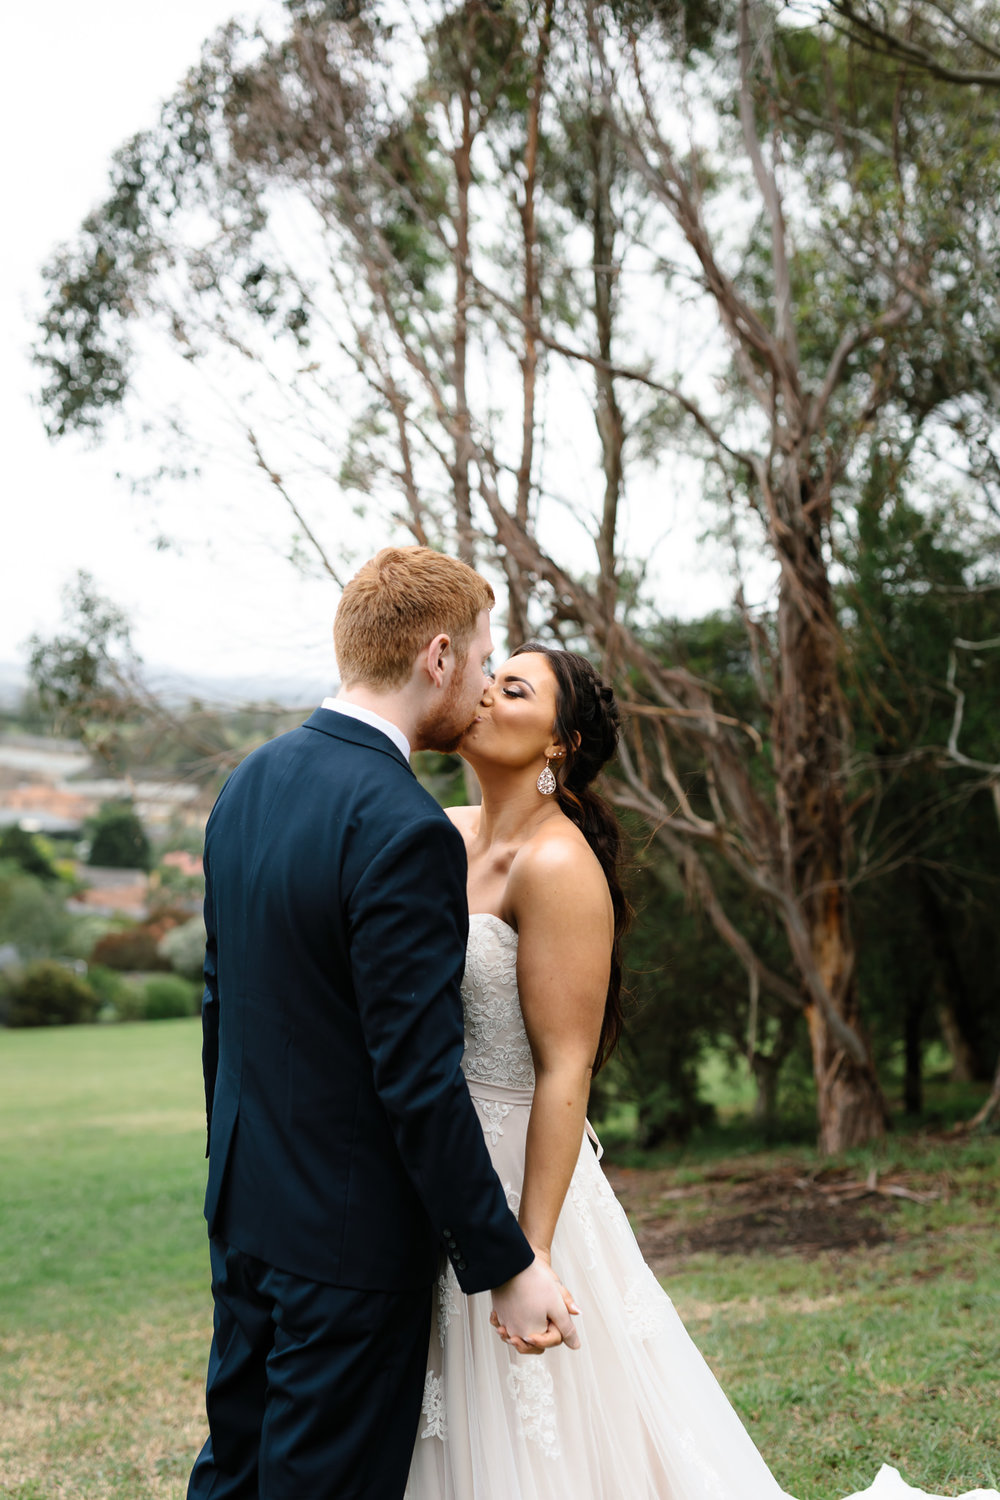 DIY wedding, bridal portraits, first kiss, in love, young love, kiss, emotion, Yarra valley Weddings, Melbourne Weddings, Destination Weddings, Wedding day ready, hello may, lace,